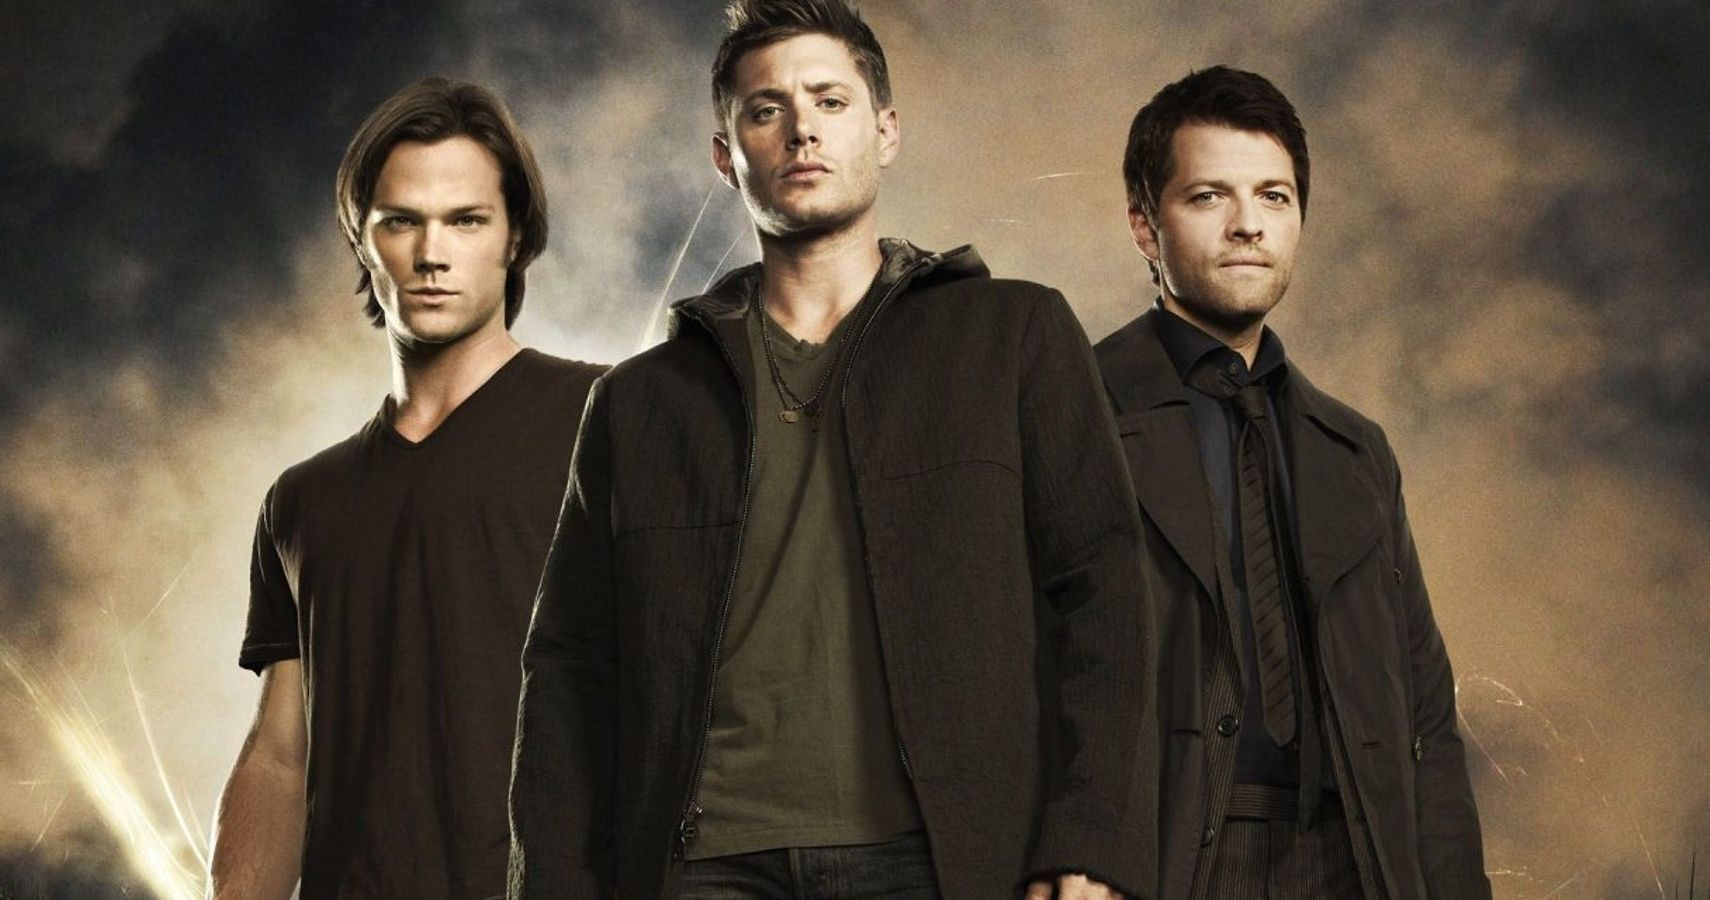 Supernatural: 10 Characters Who Would Have Made Awesome Hunters (But Weren't)